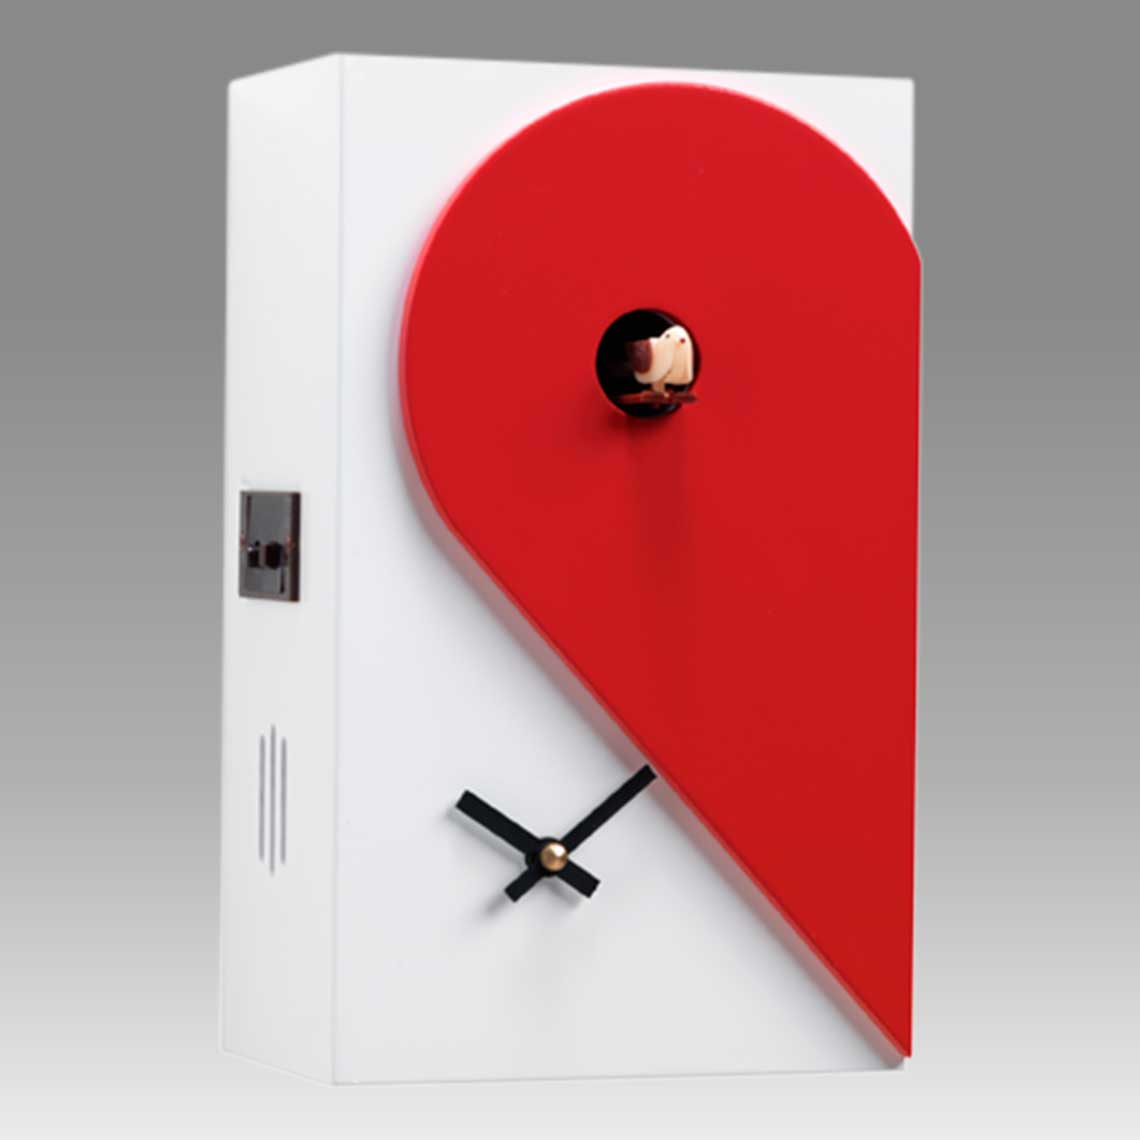 Modern cuckoo clock Art.loveme loveyou 2606 lacquered with acrilic color white with red heart